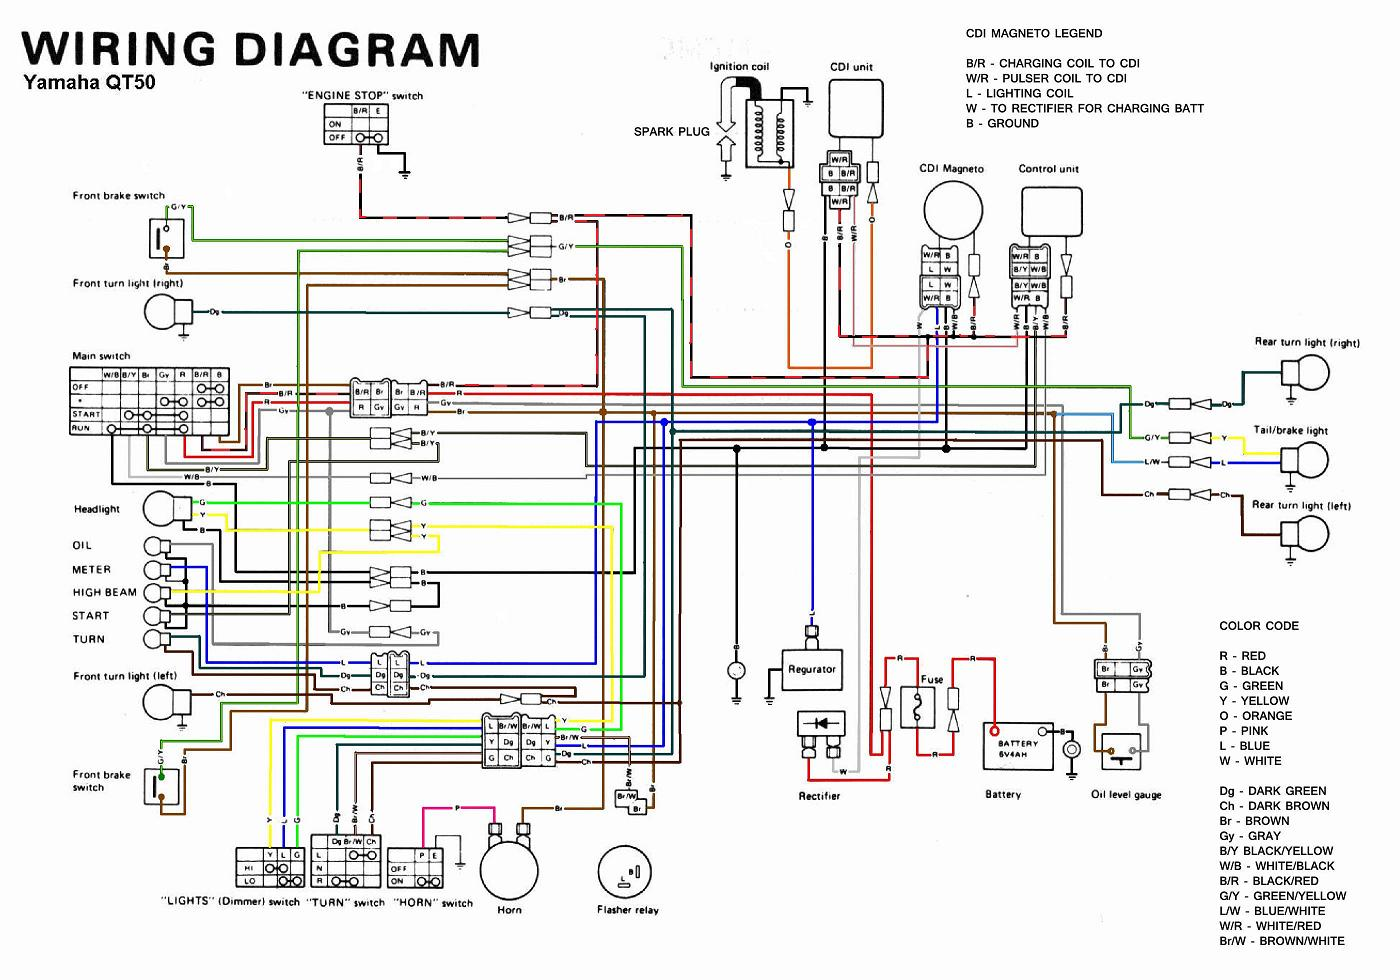 yamaha qt50 wiring diagram yamaha qt50 luvin and other nopeds rh qt50 net honda mt 50 wiring diagram honda 50 outboard wiring diagram